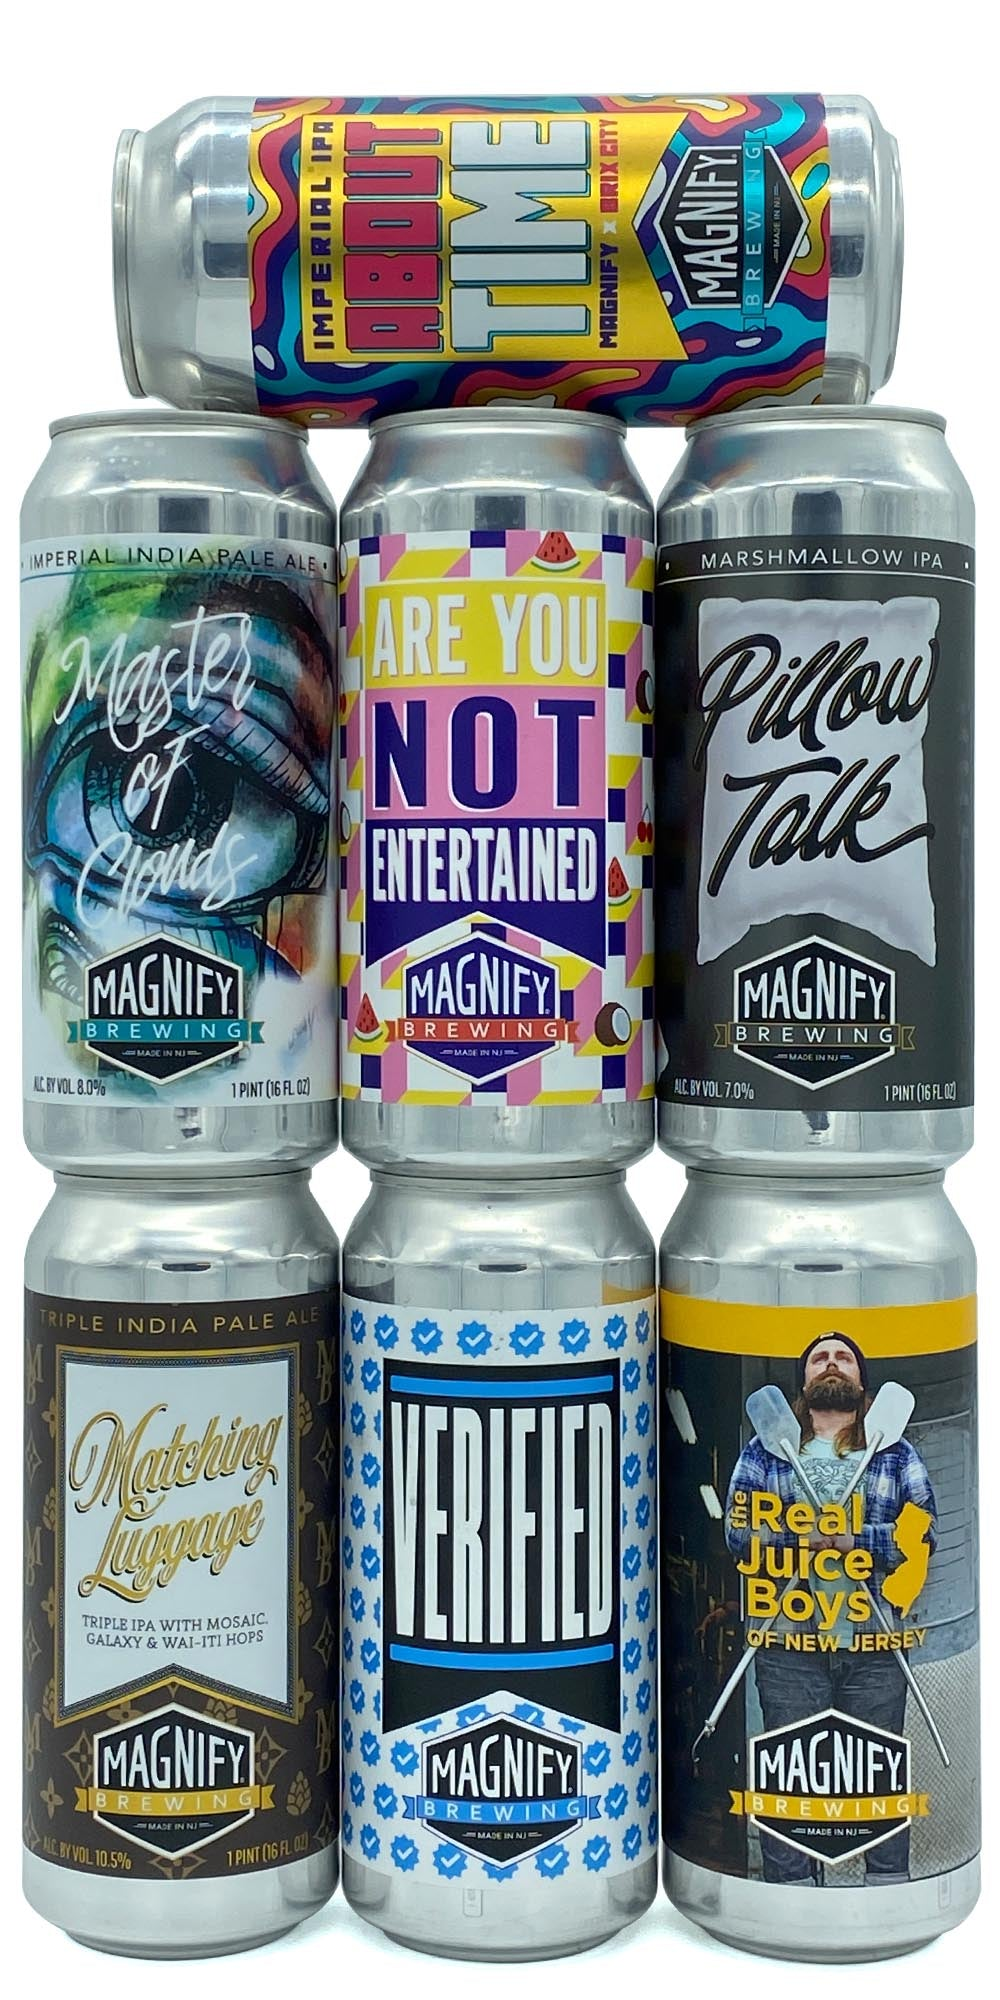 Magnify Brewing - October '20 Bundle